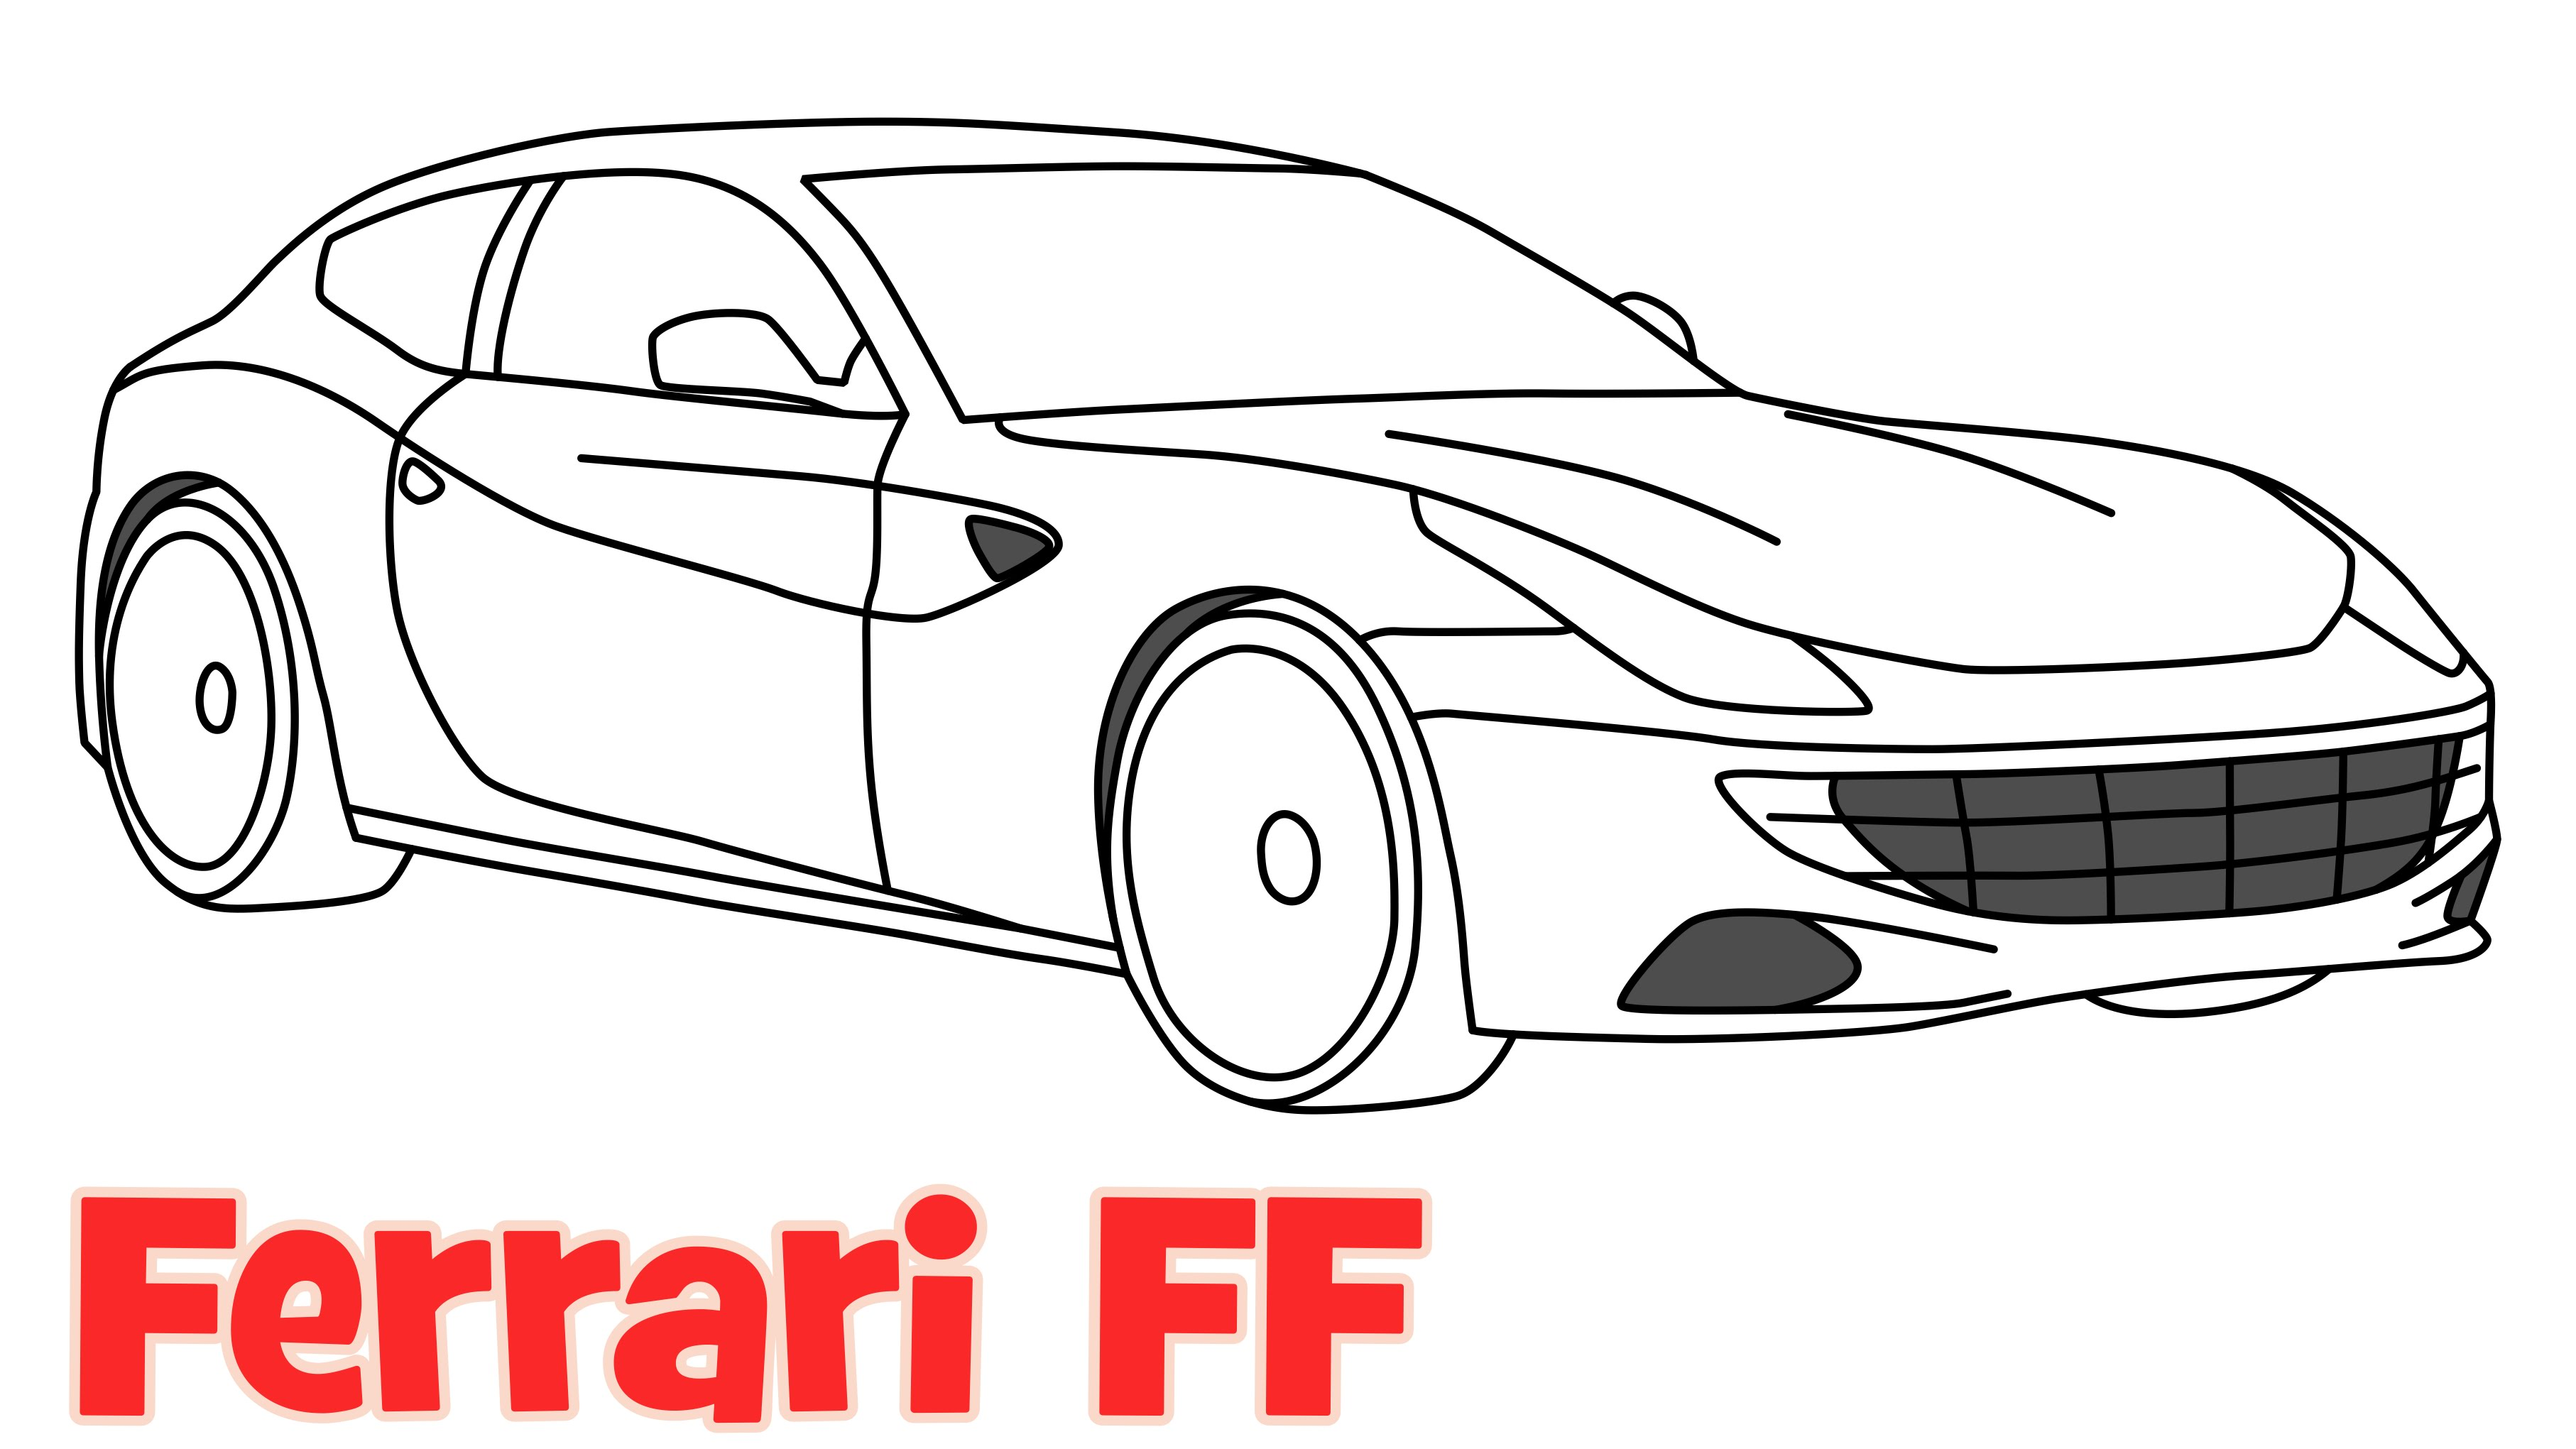 3628x2041 How To Draw A Car Ferrari Ff Step By Step Easy Drawing For Kids